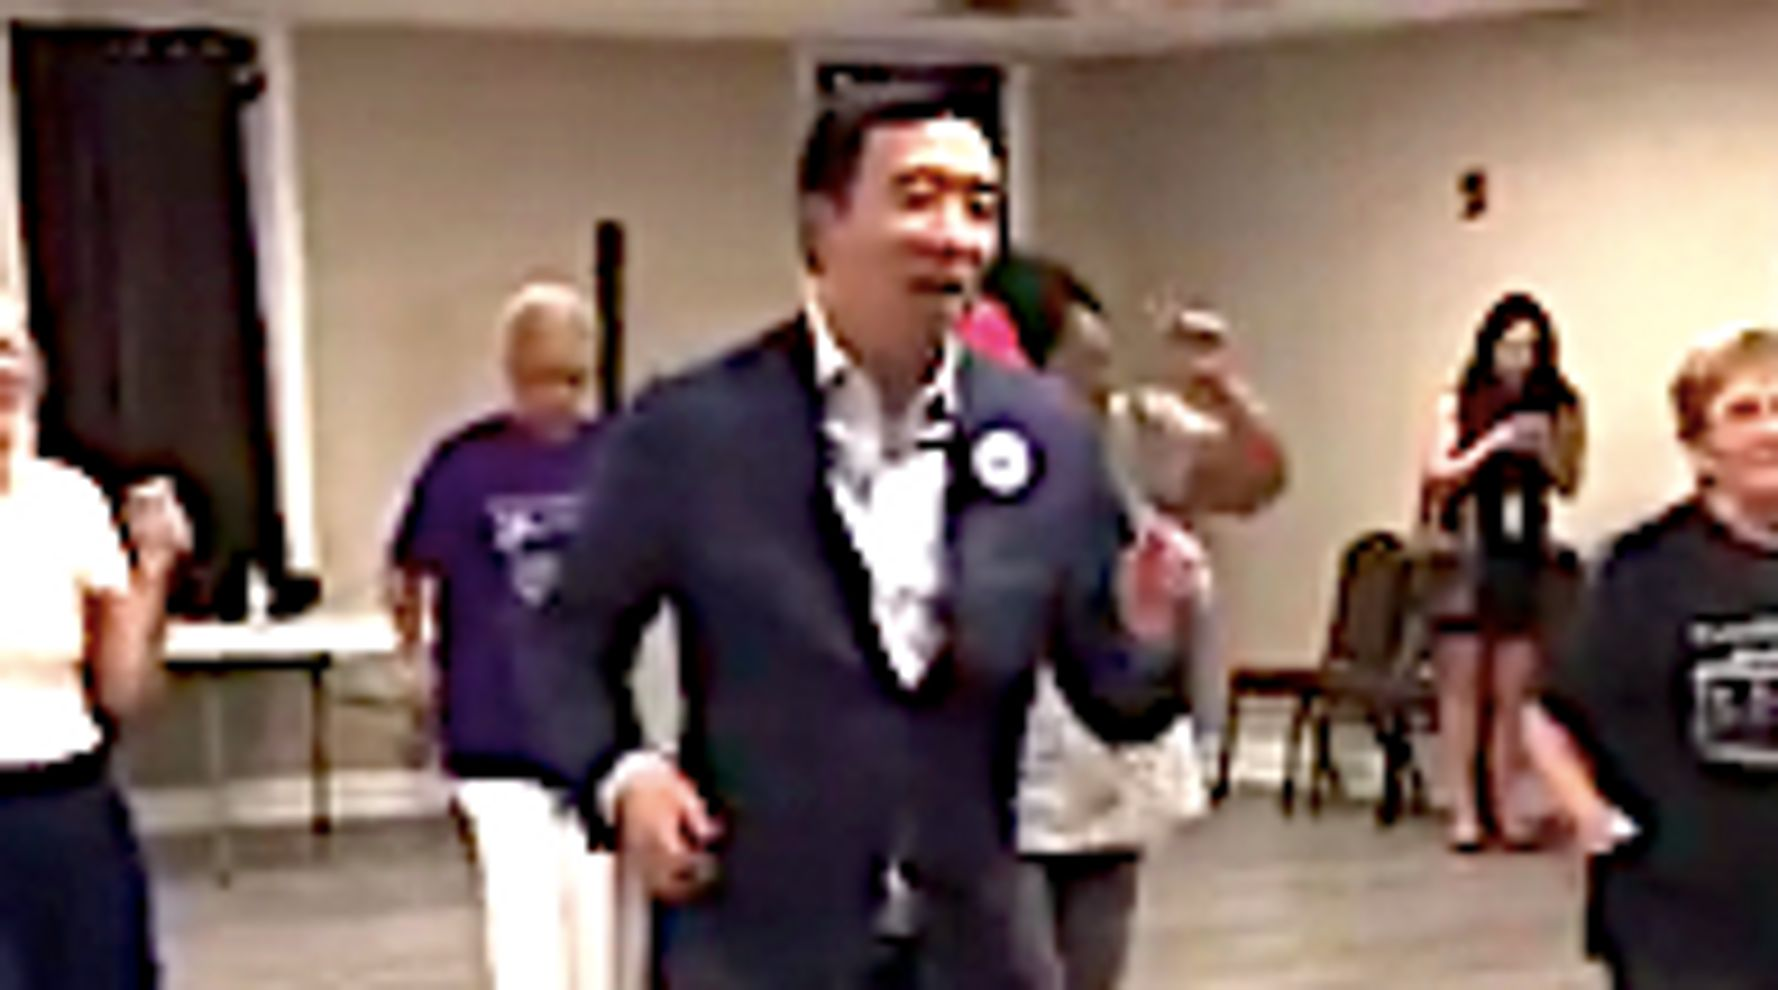 Westlake Legal Group 5d578e172200005500f6dcce Andrew Yang Gets Shoutout From Chance The Rapper After Busting 'Cupid Shuffle'